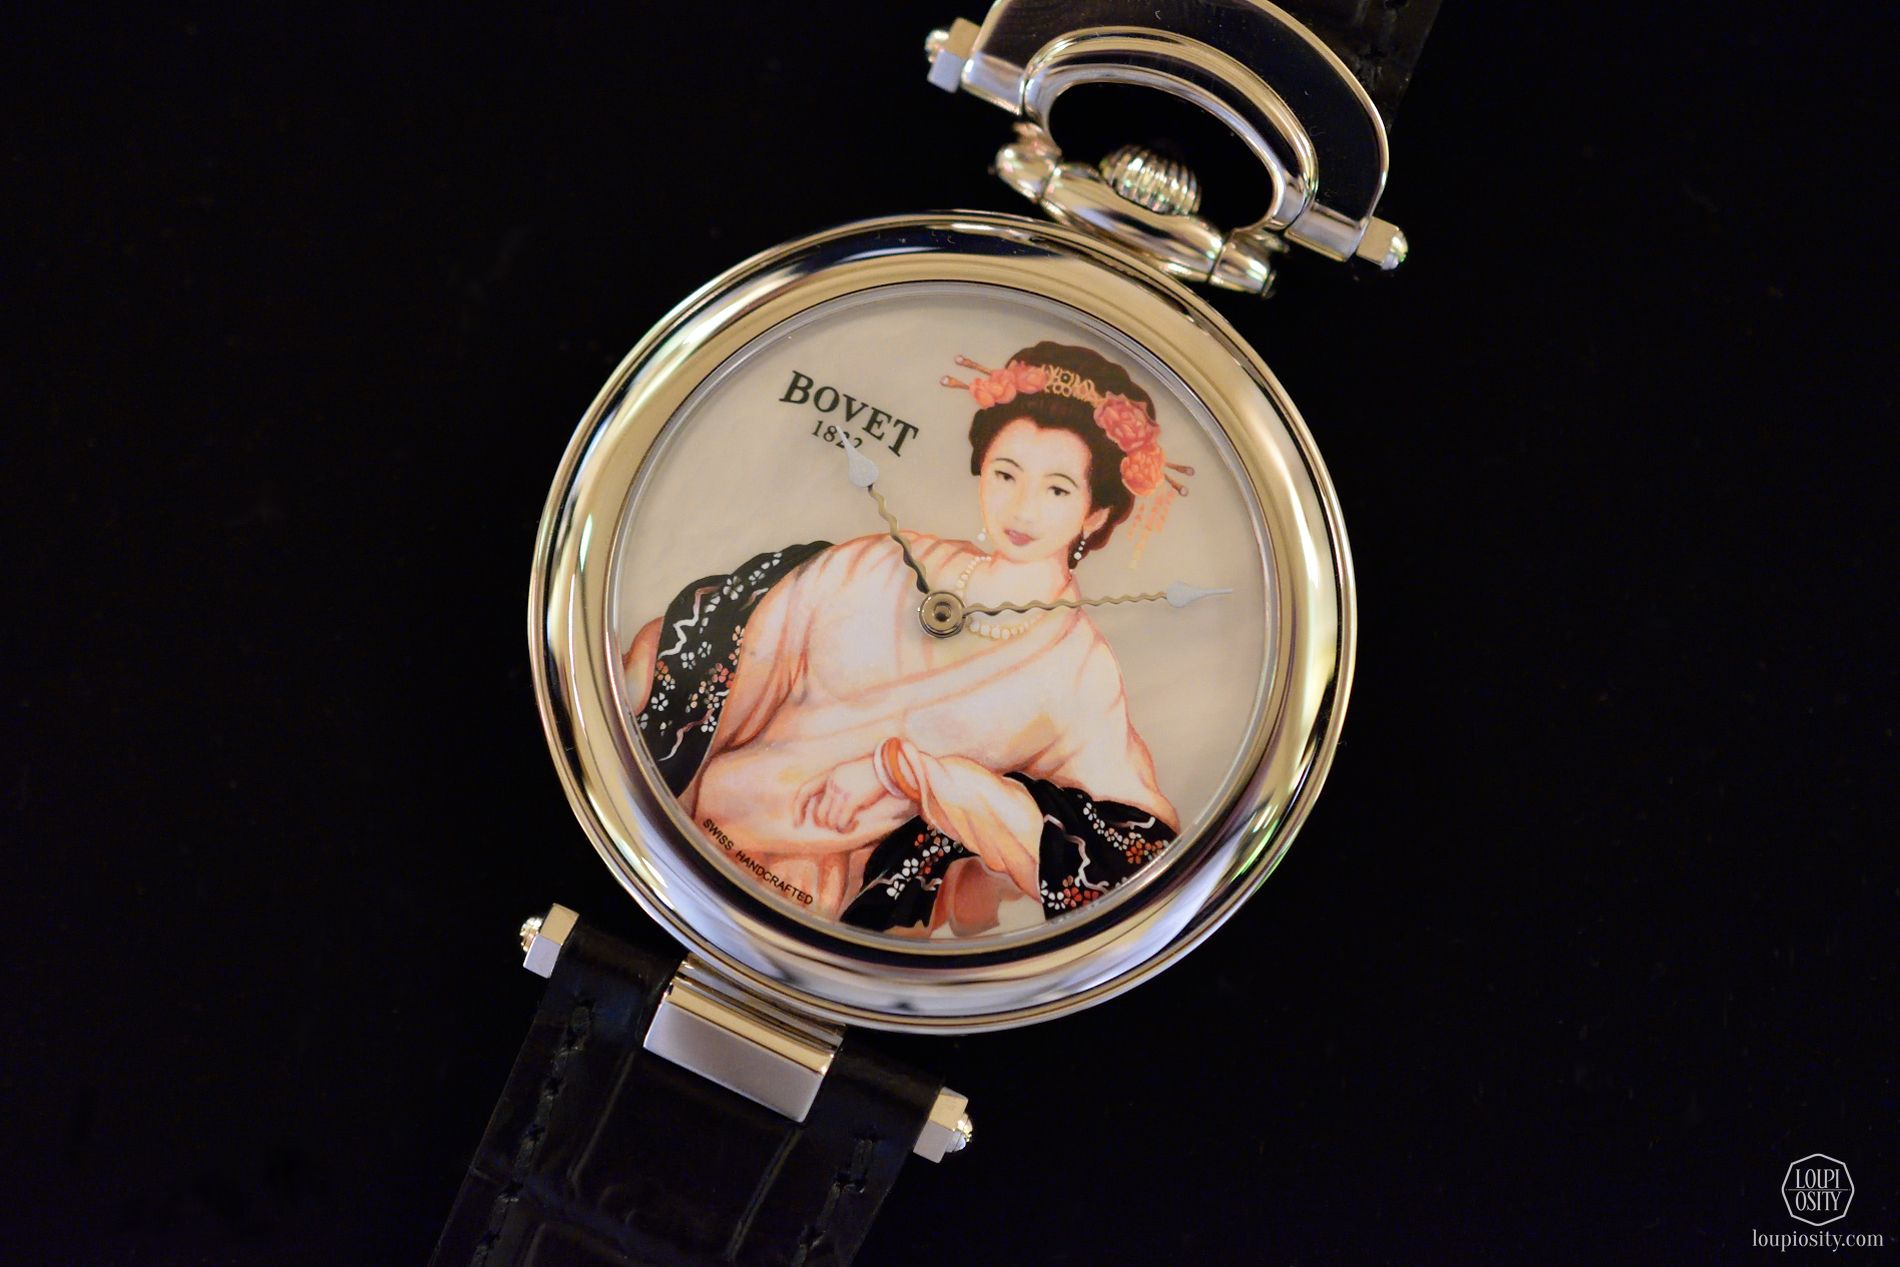 Bovet Secret Beauty